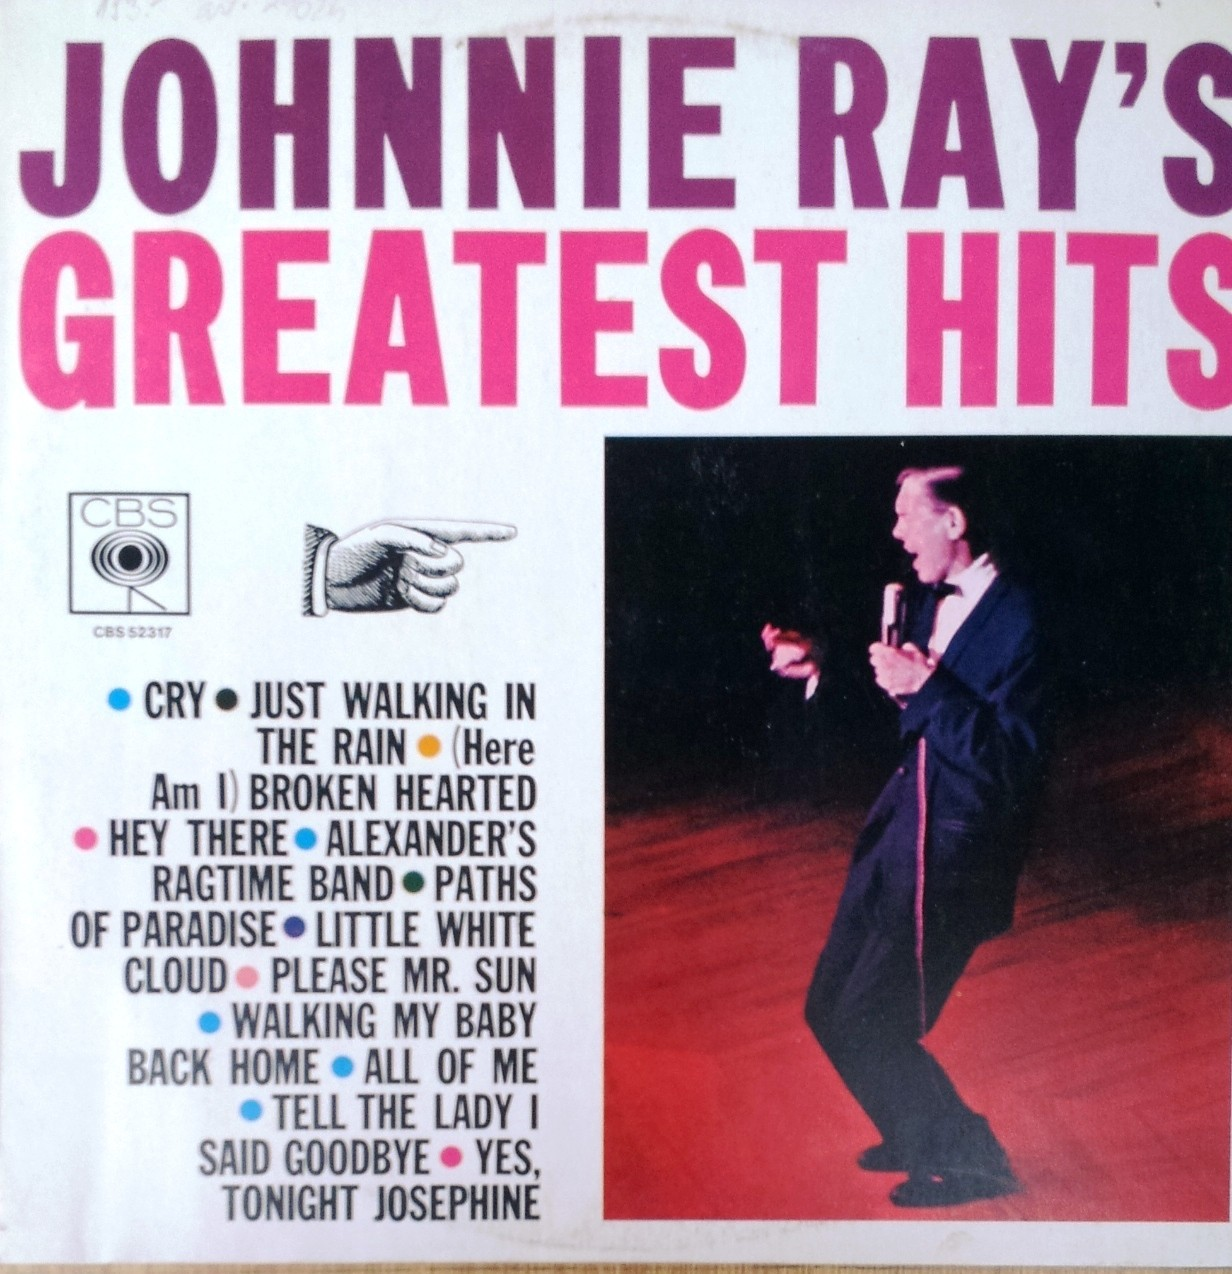 Ray Johnnie - Johnnie Rays Greatest Hits